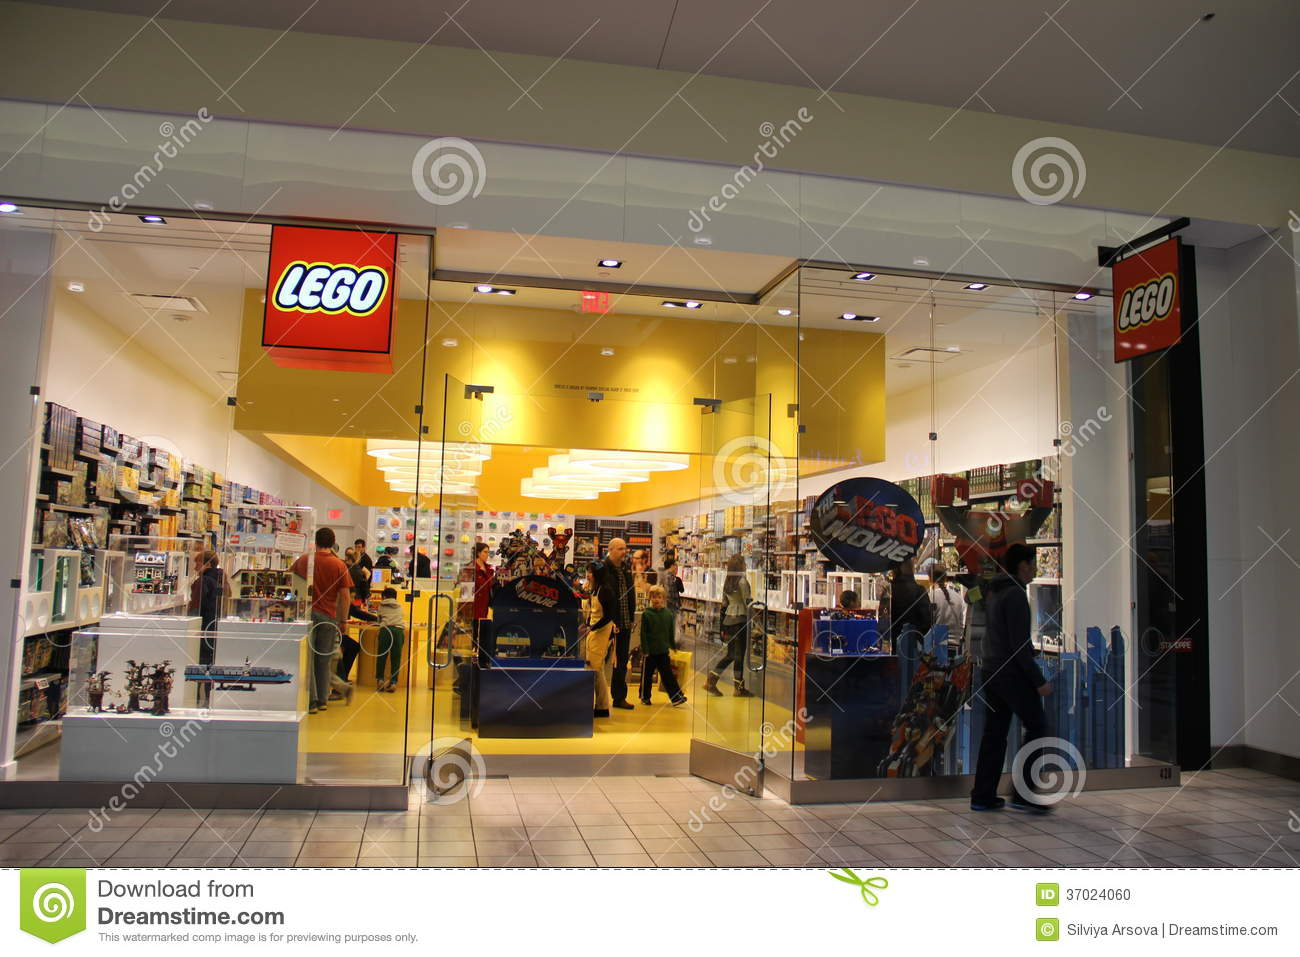 Lego Shops Adelaide Lego Store Editorial Image Image Of Educational Wars